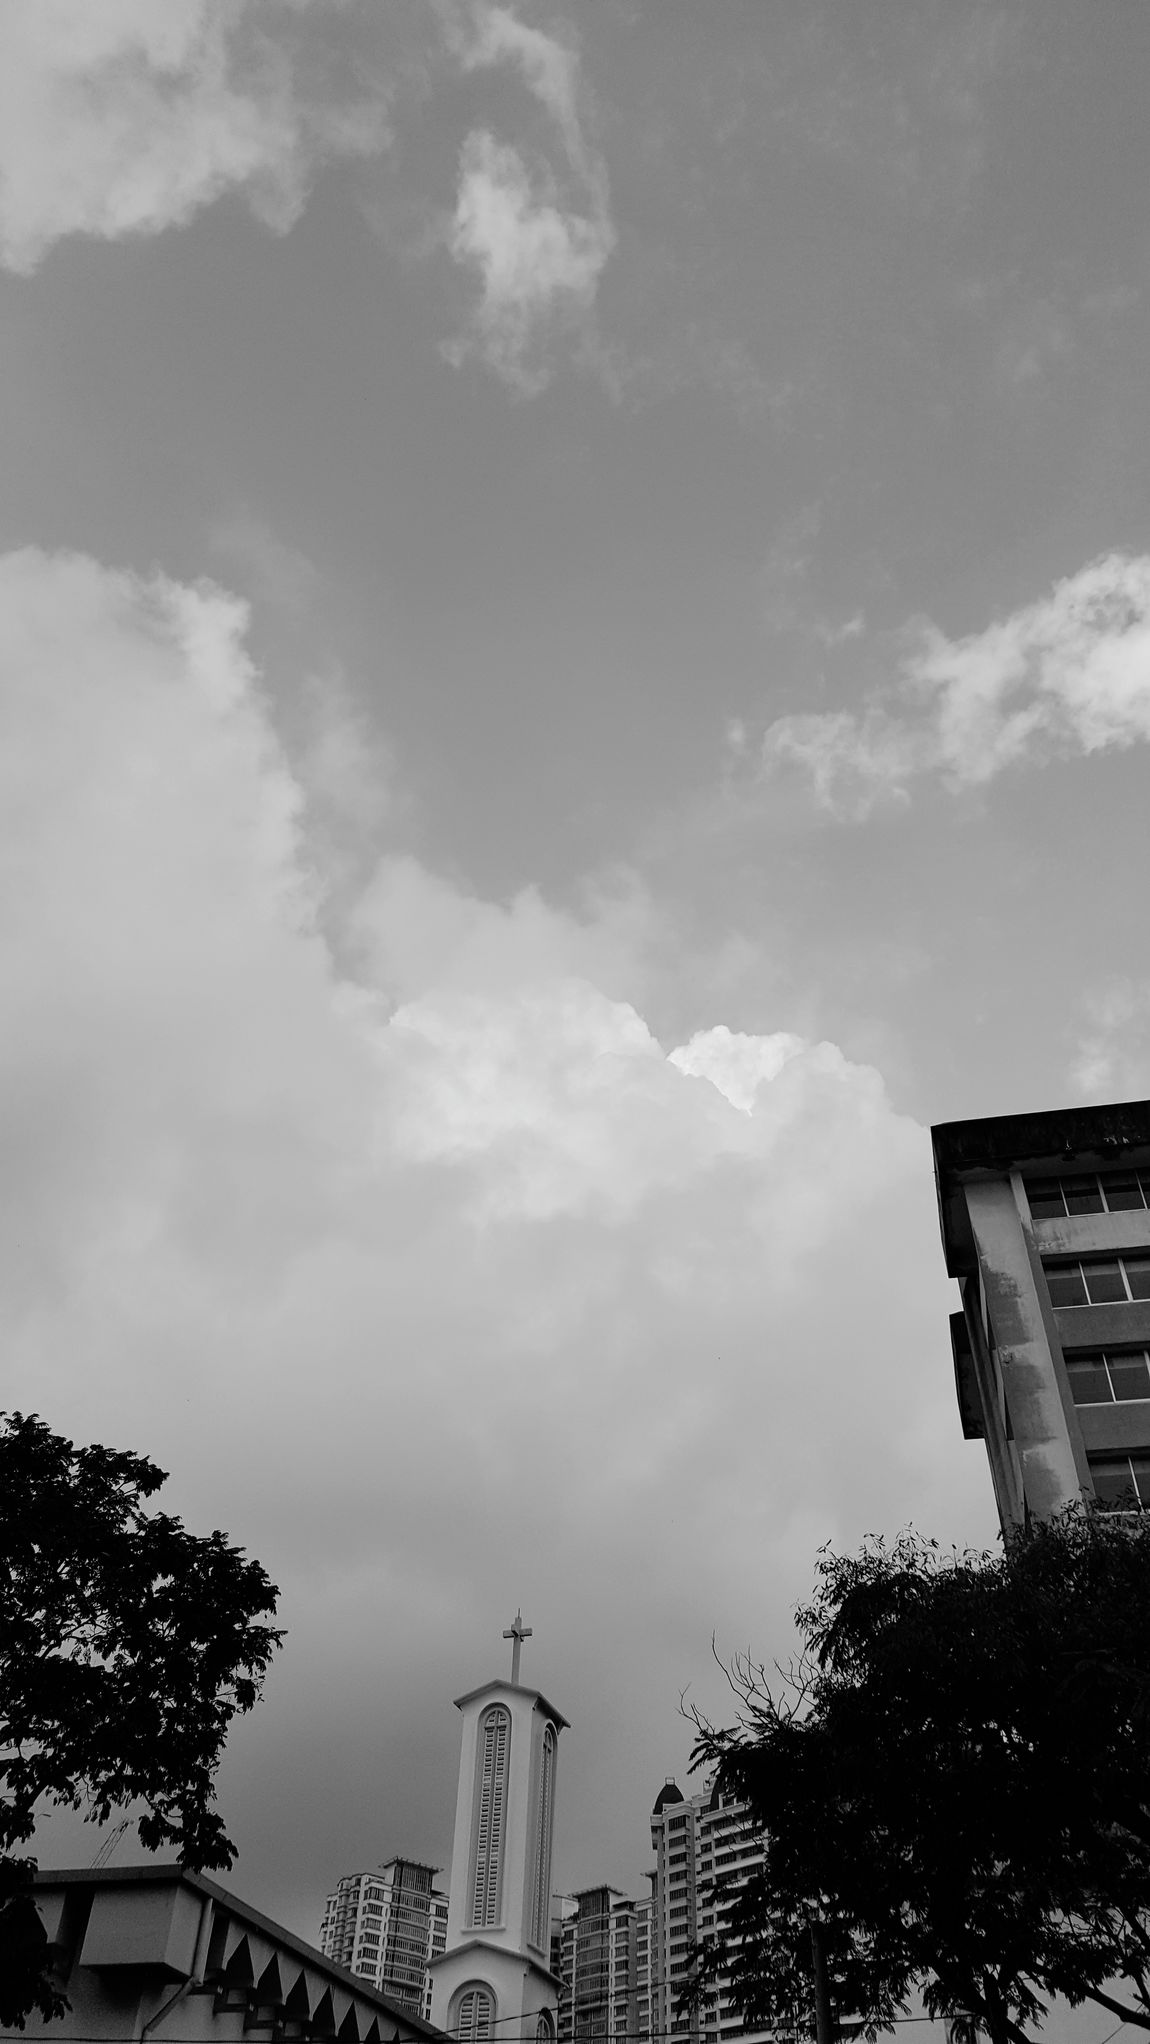 The Week On EyeEm Architecture Building Exterior Low Angle View Built Structure Tree Cloud - Sky Sky Outdoors City No People Skyscraper Day Penang Island Peaceful Morning Macalister Road Penang Freshness Black And White Friday